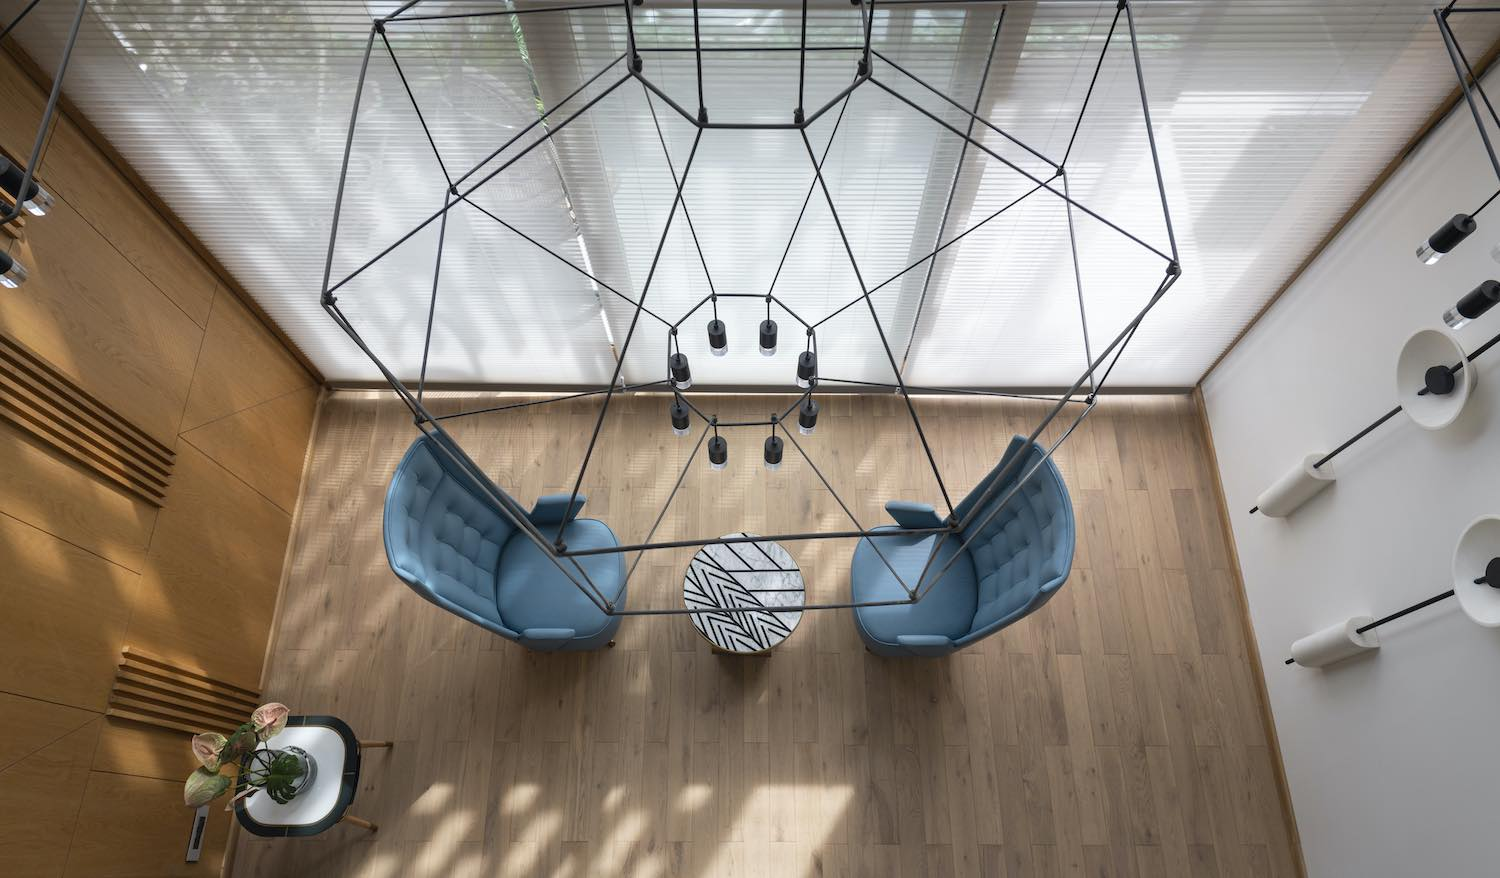 steel pendant lamp over blue armchairs